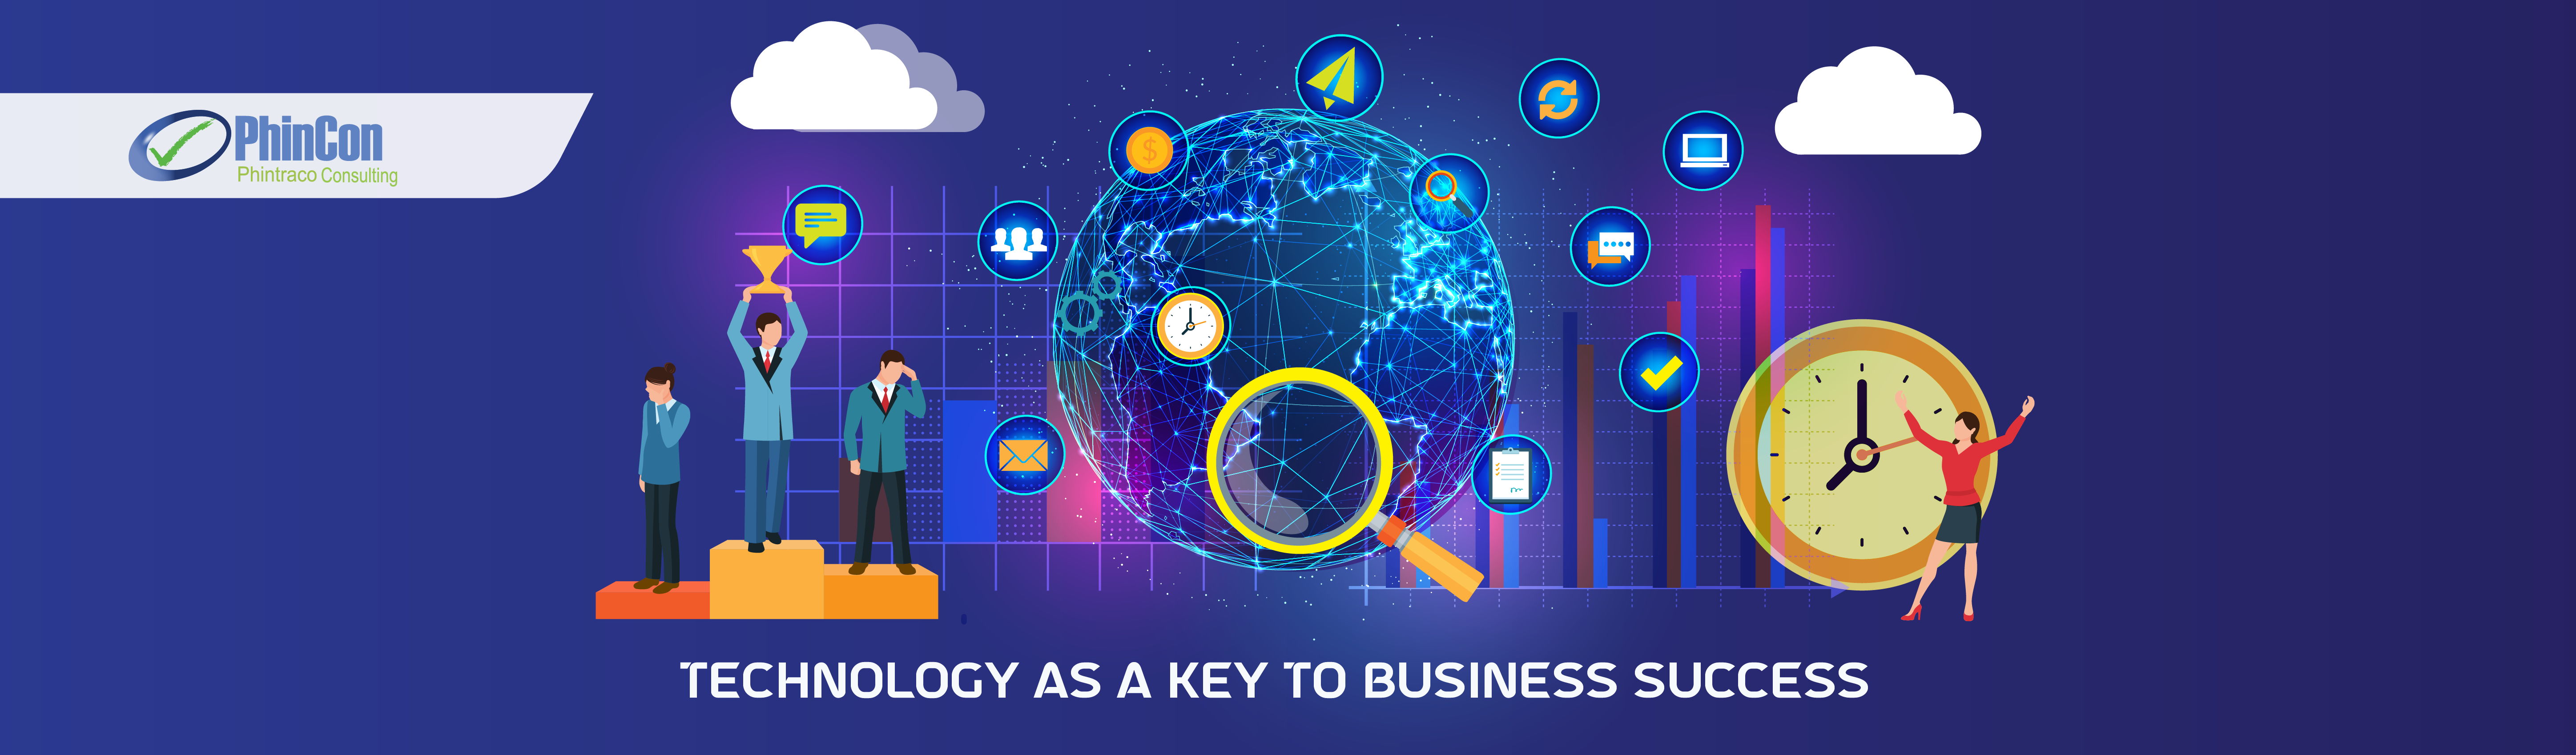 Technology as a Key to Business Success - PhinCon